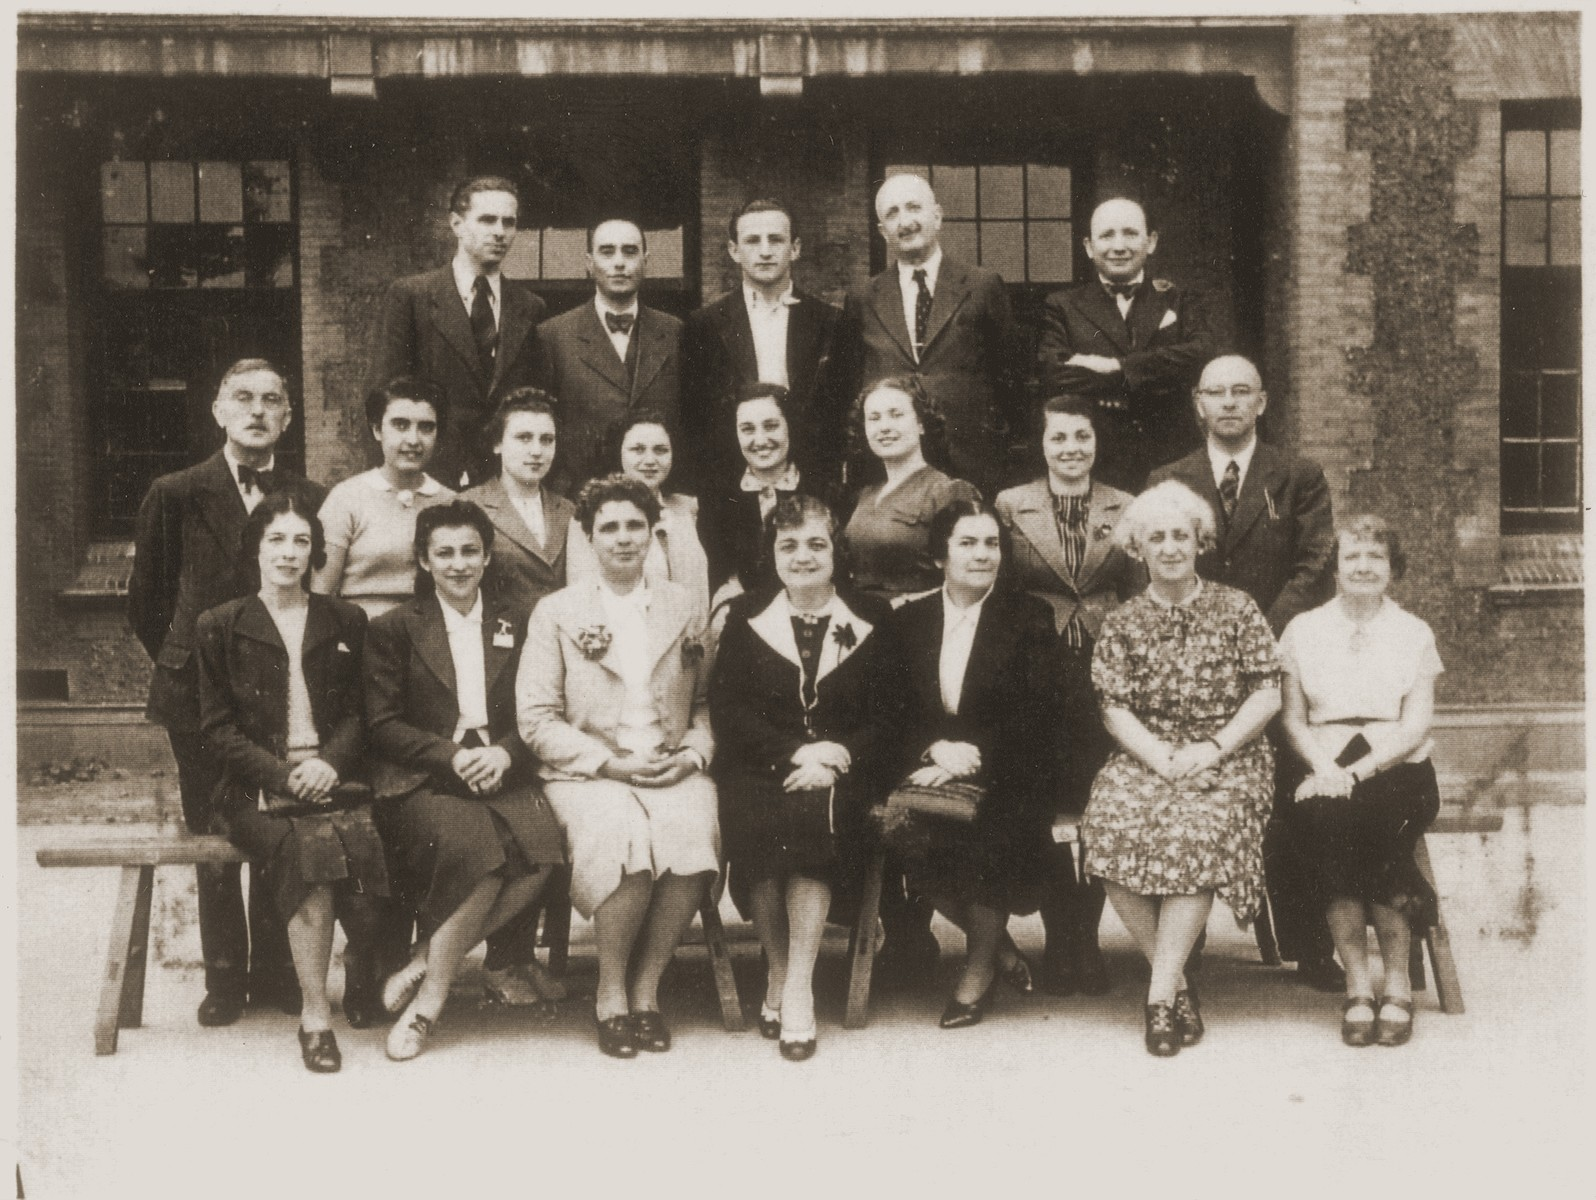 The teaching staff of the Transition Upper school on Kinchow Road in Shanghai.  Pictured from left to right are bottom row: ?, Ms. Hanin, ?, Mrs. Hartwich (school principal), ?, Mrs. Lebrun, Mrs. Plohn (kindergarten teacher); middle row: Mr. Epstein, Ms. Sussman (school secretary), Ms. Oystragh, Ms. Brussels, ?, Ms. Manassee (kindergarten teacher), Mr. Albert Wesel (Hebrew teacher); top row: Mr. Scherman (art teacher), Mr. Plaschke, Leo Meyer (gym teacher), Dr. Solomon (school physician), Mr. Erdstein (dance teacher).